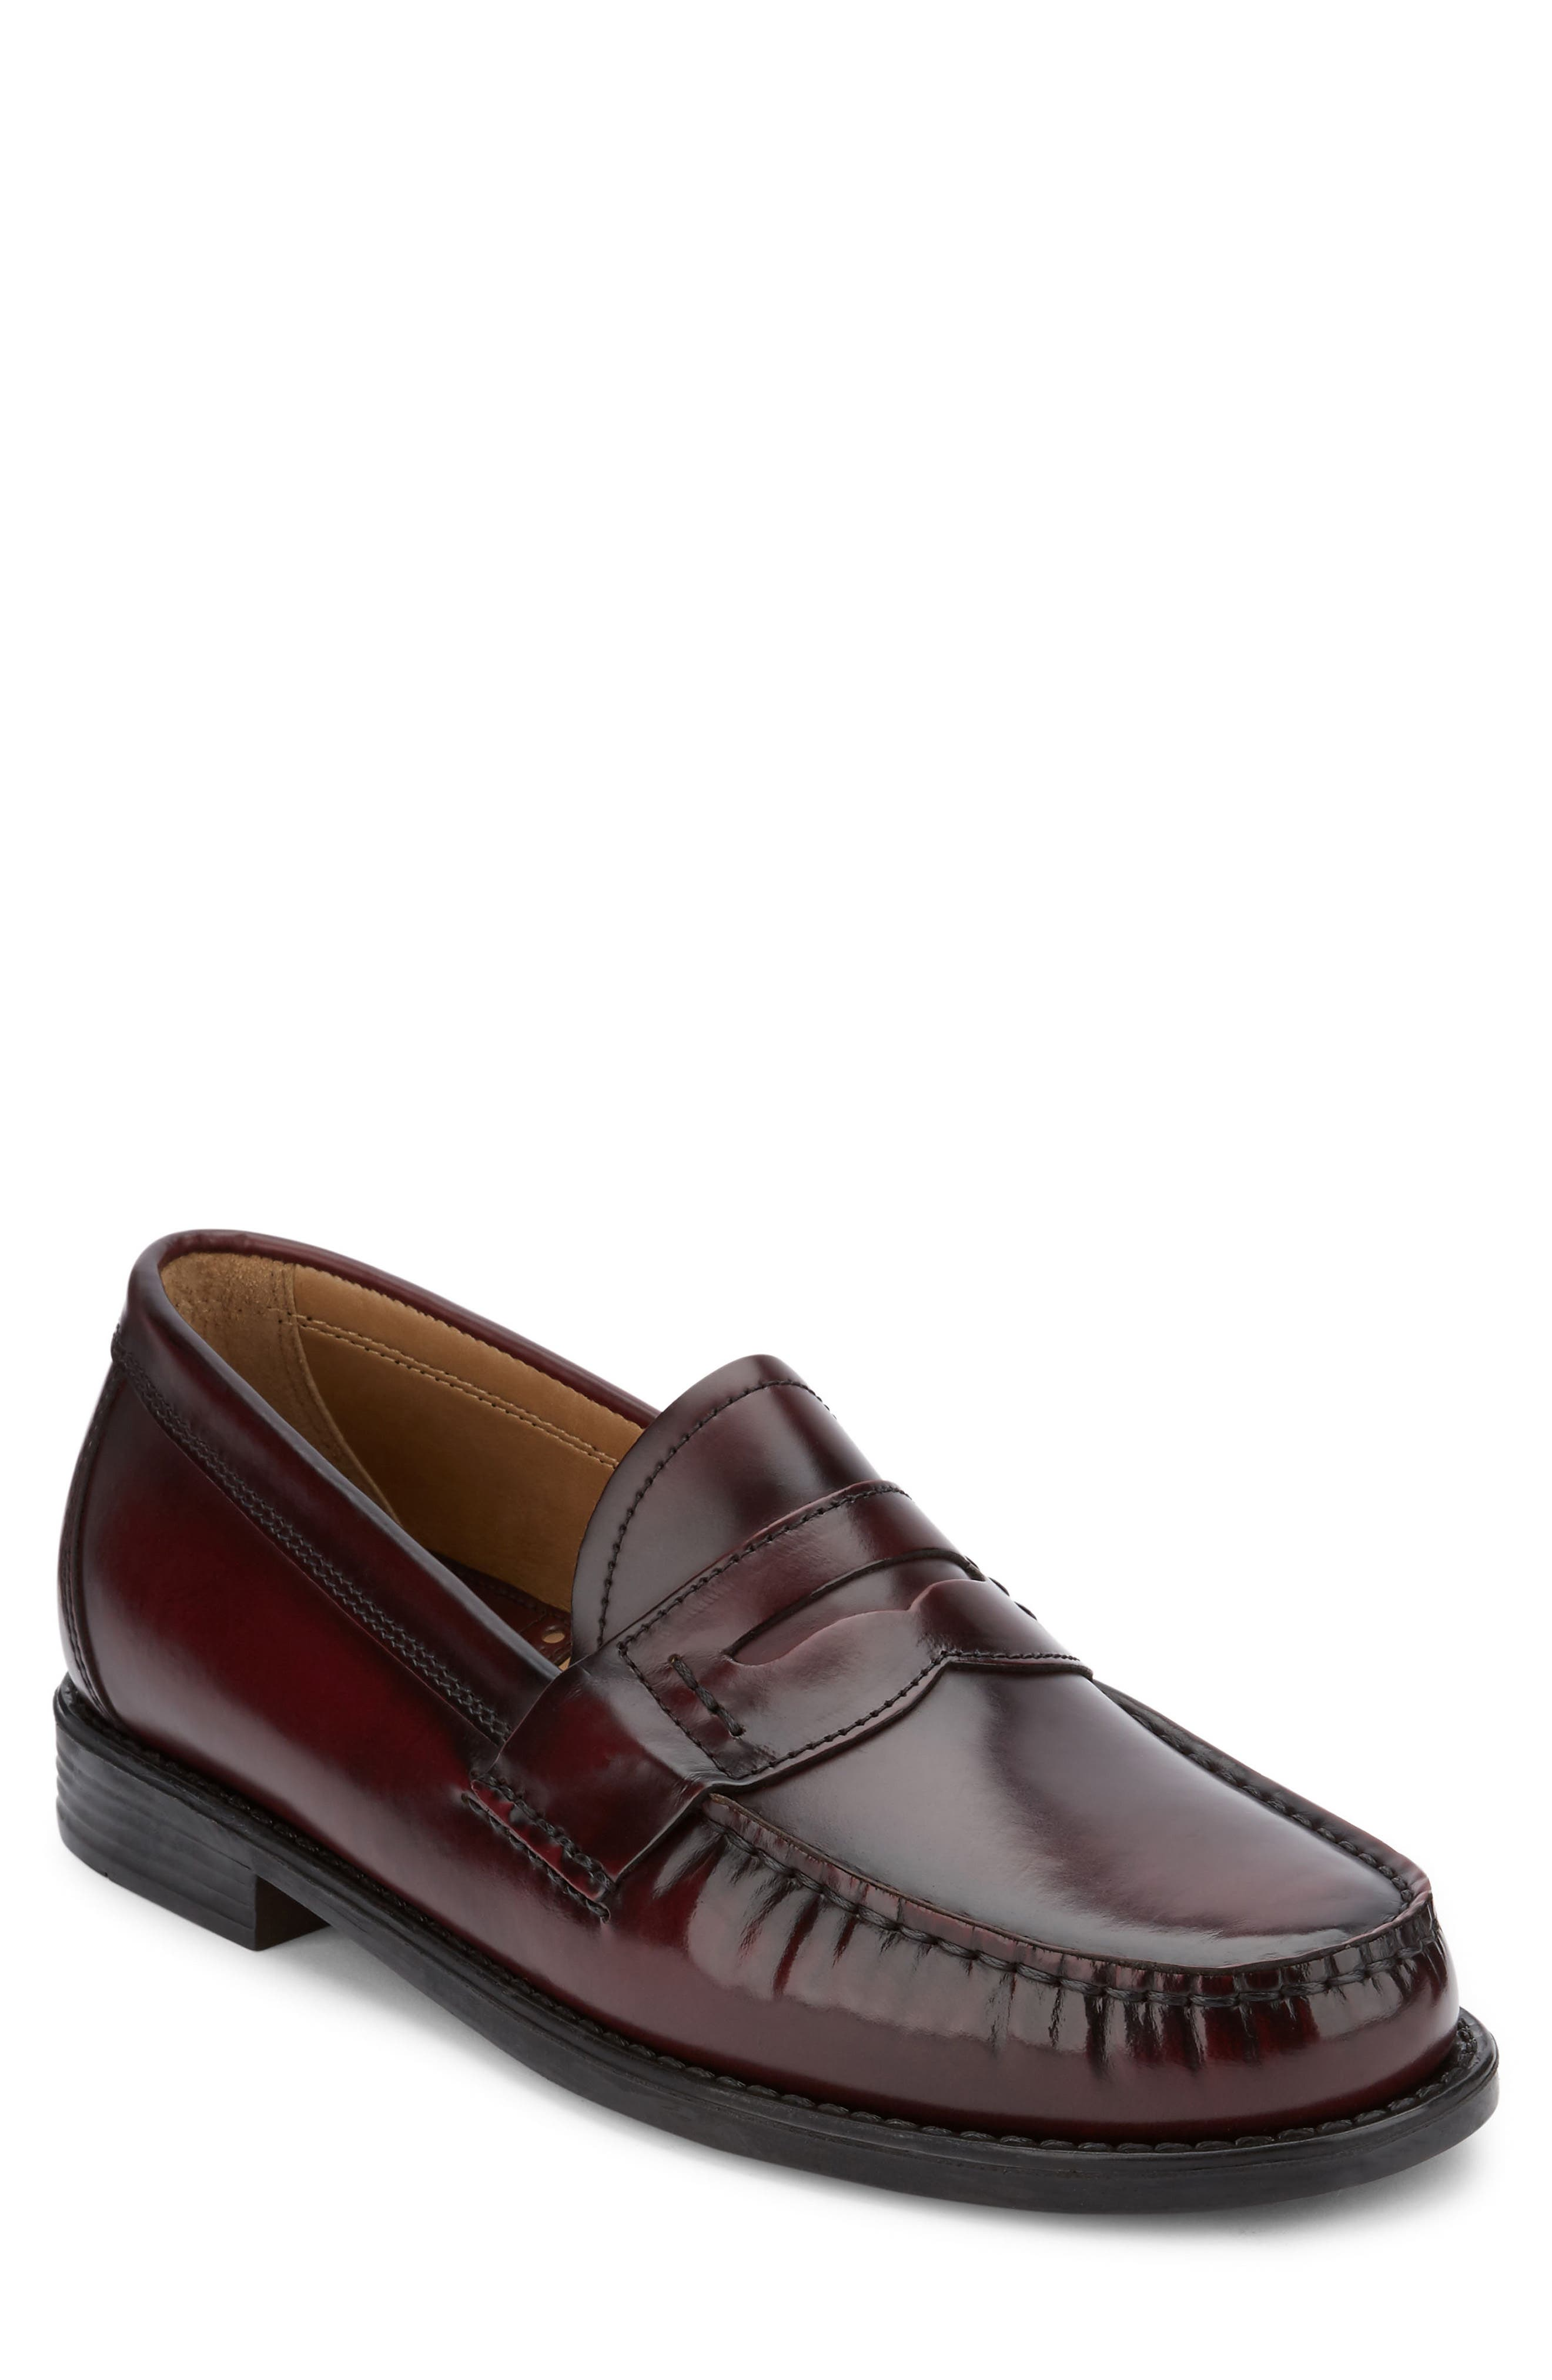 Bass & Co. Black Mens Loafers Roxbury 9 M Dress Casual Shoes Comfort